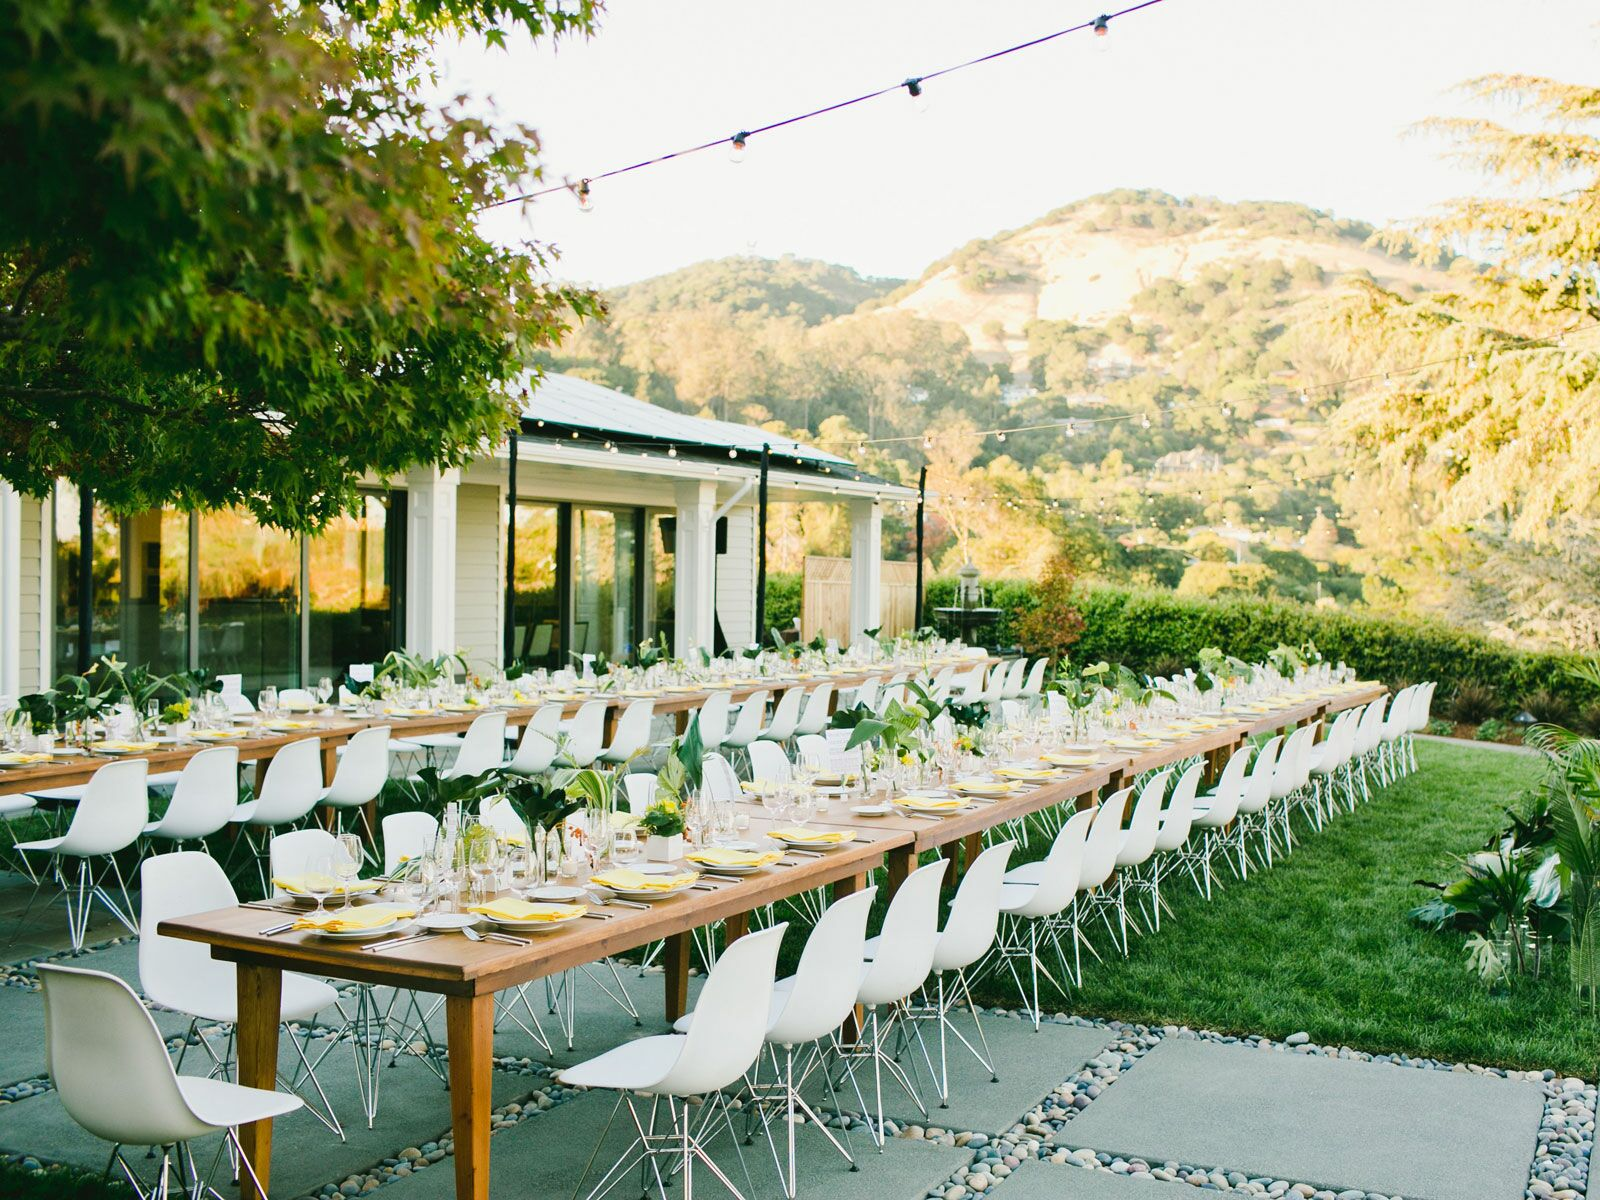 Backyard Weddings: Pros, Cons & More Tips